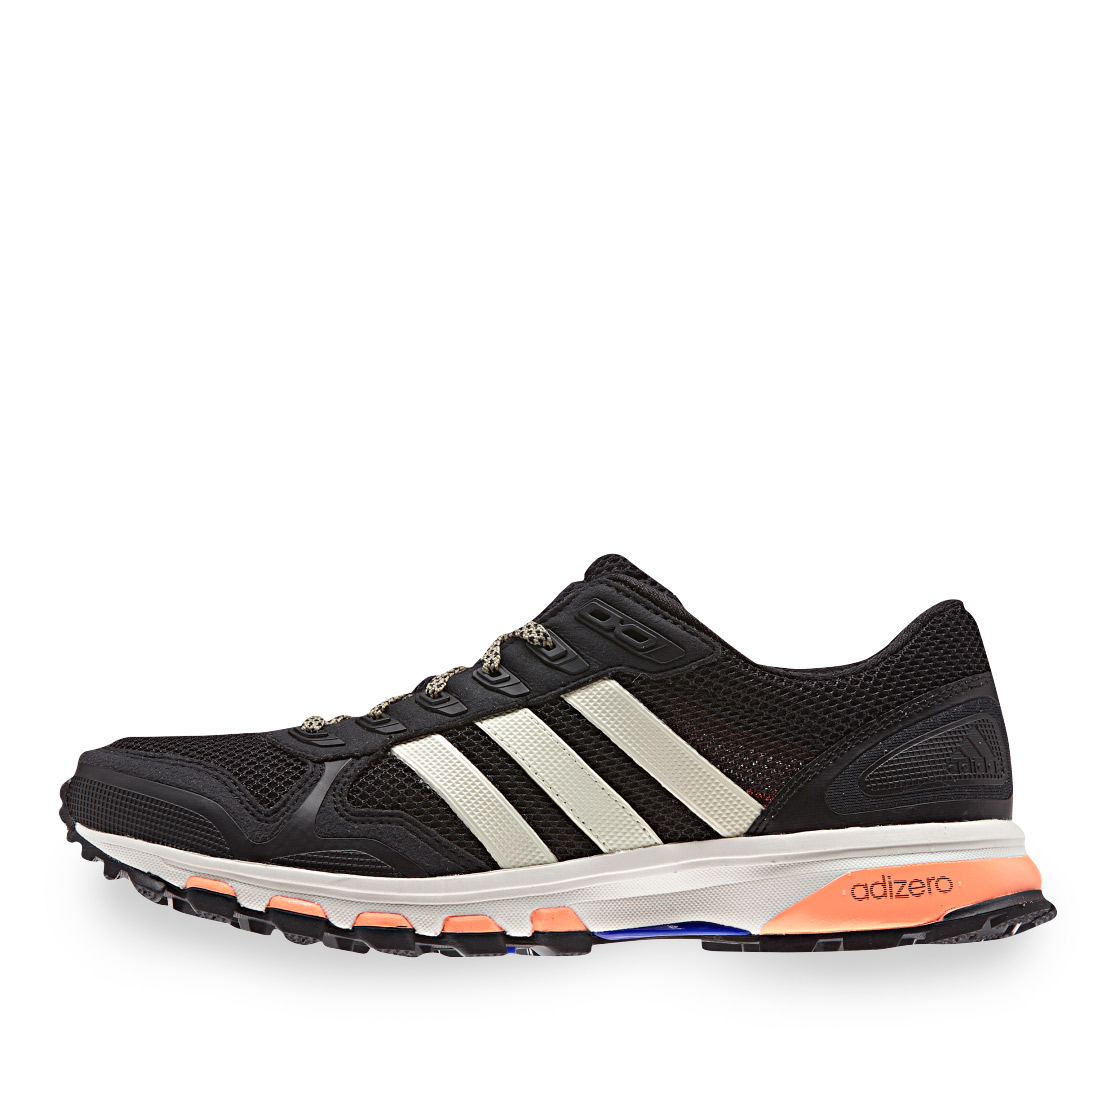 premium selection 67aeb f2a59 Adidas Adizero XT 5 W Shoe ( BlackWhiteFlash Orange )